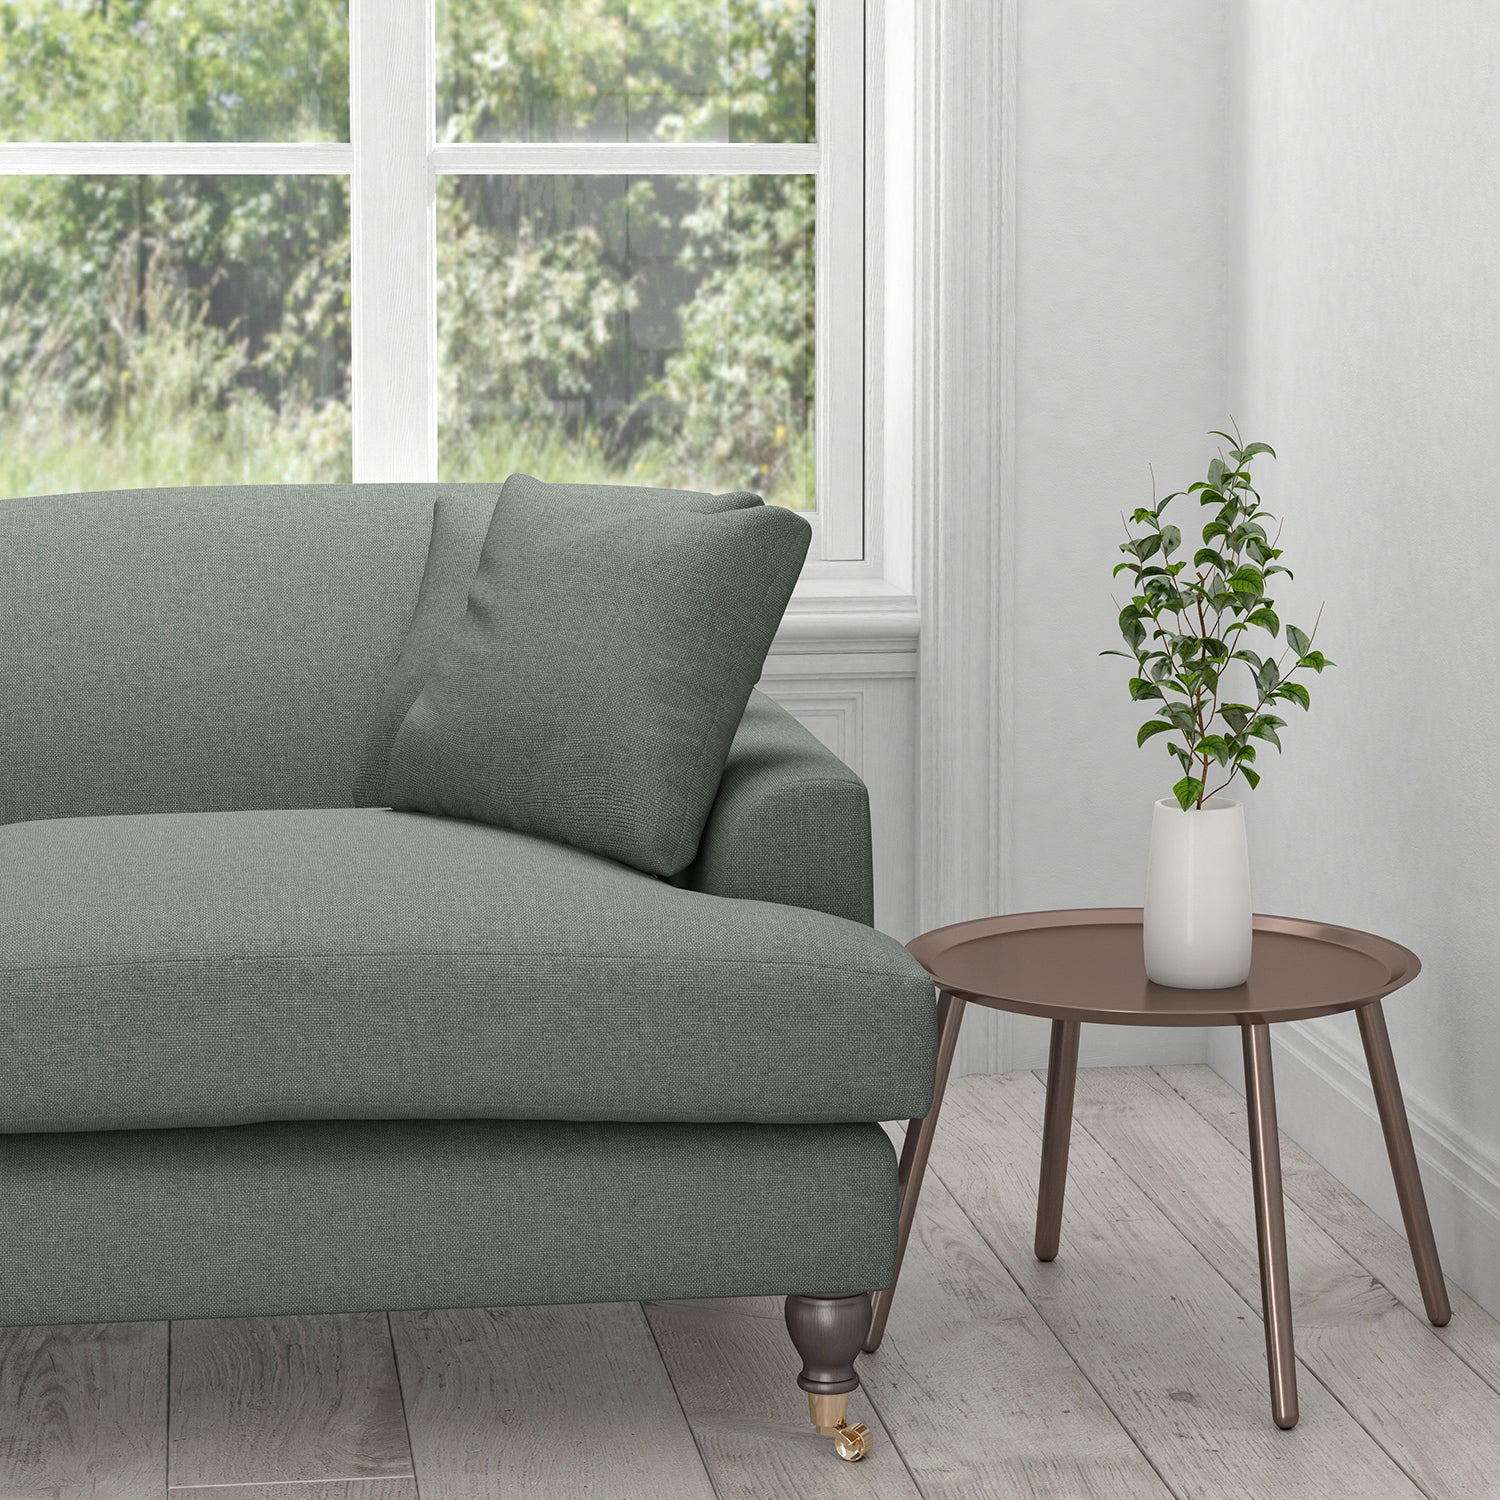 Sofa upholstered in a plain cotton washable aqua furnishing fabric